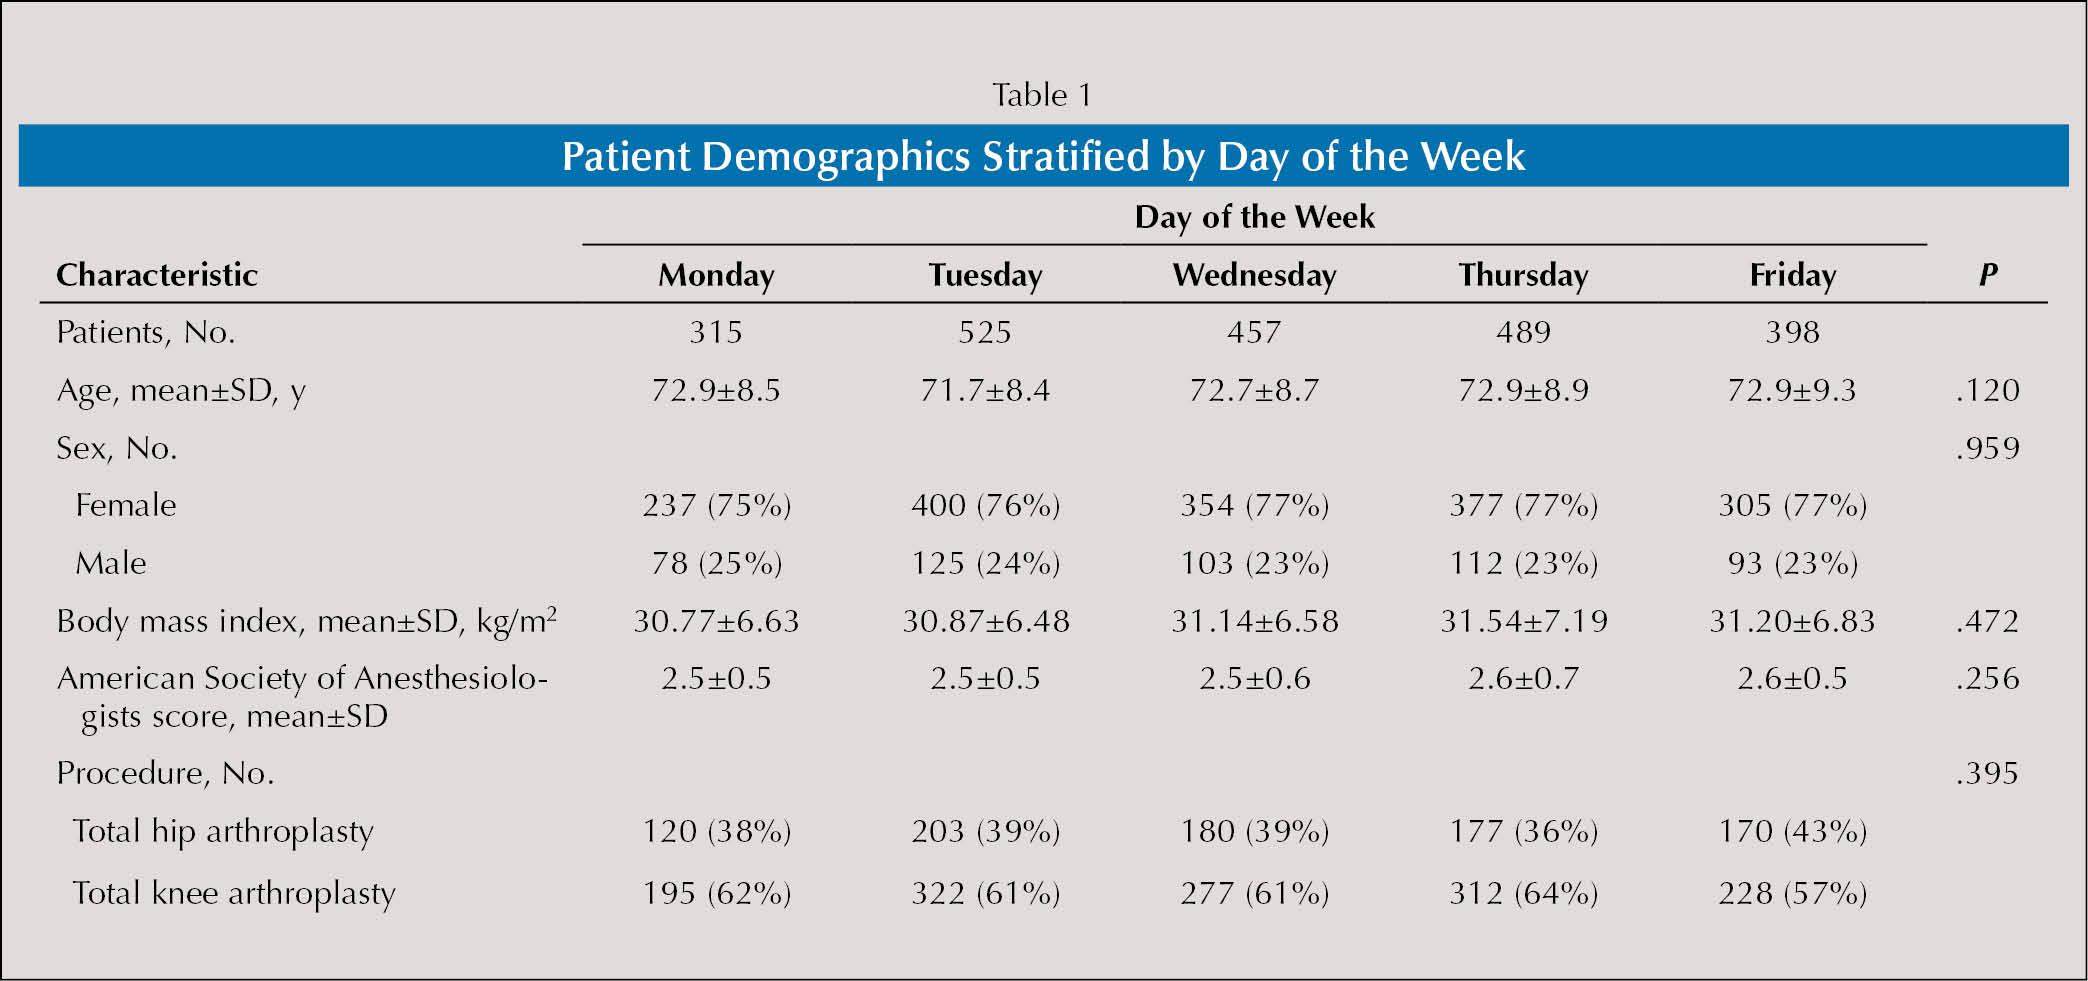 Patient Demographics Stratified by Day of the Week